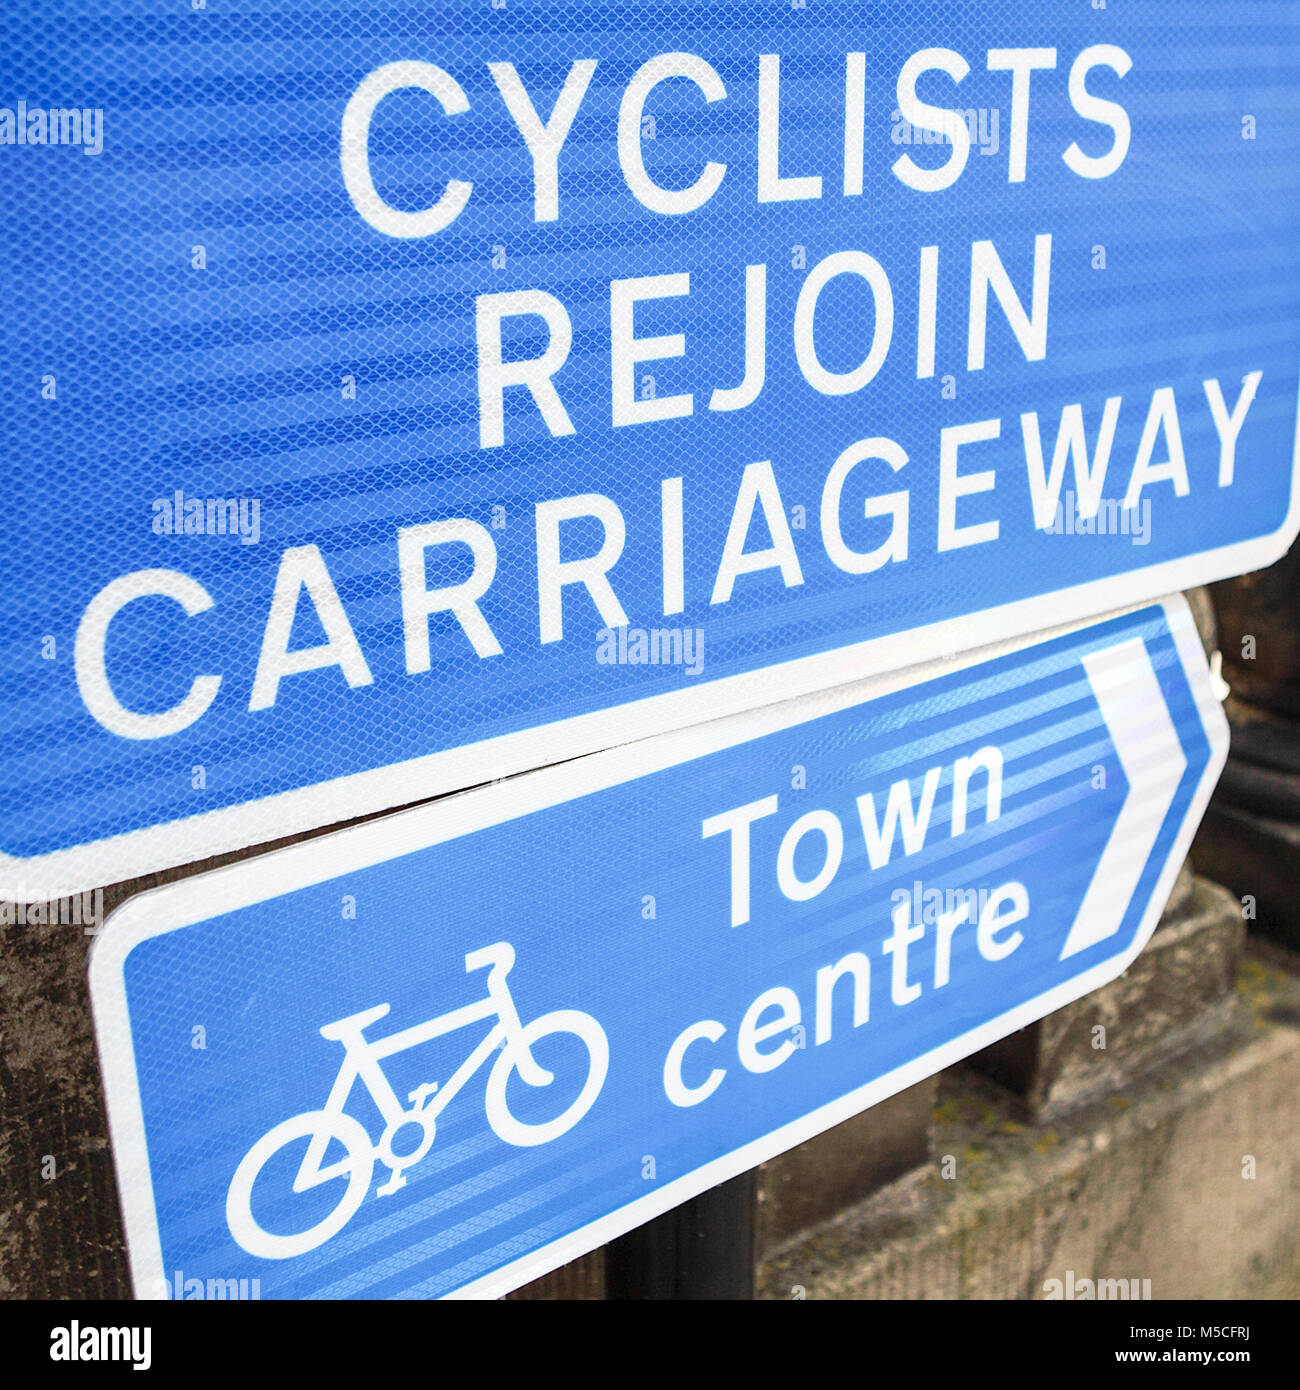 Compulsory traffic signs relating to cycling. - Stock Image